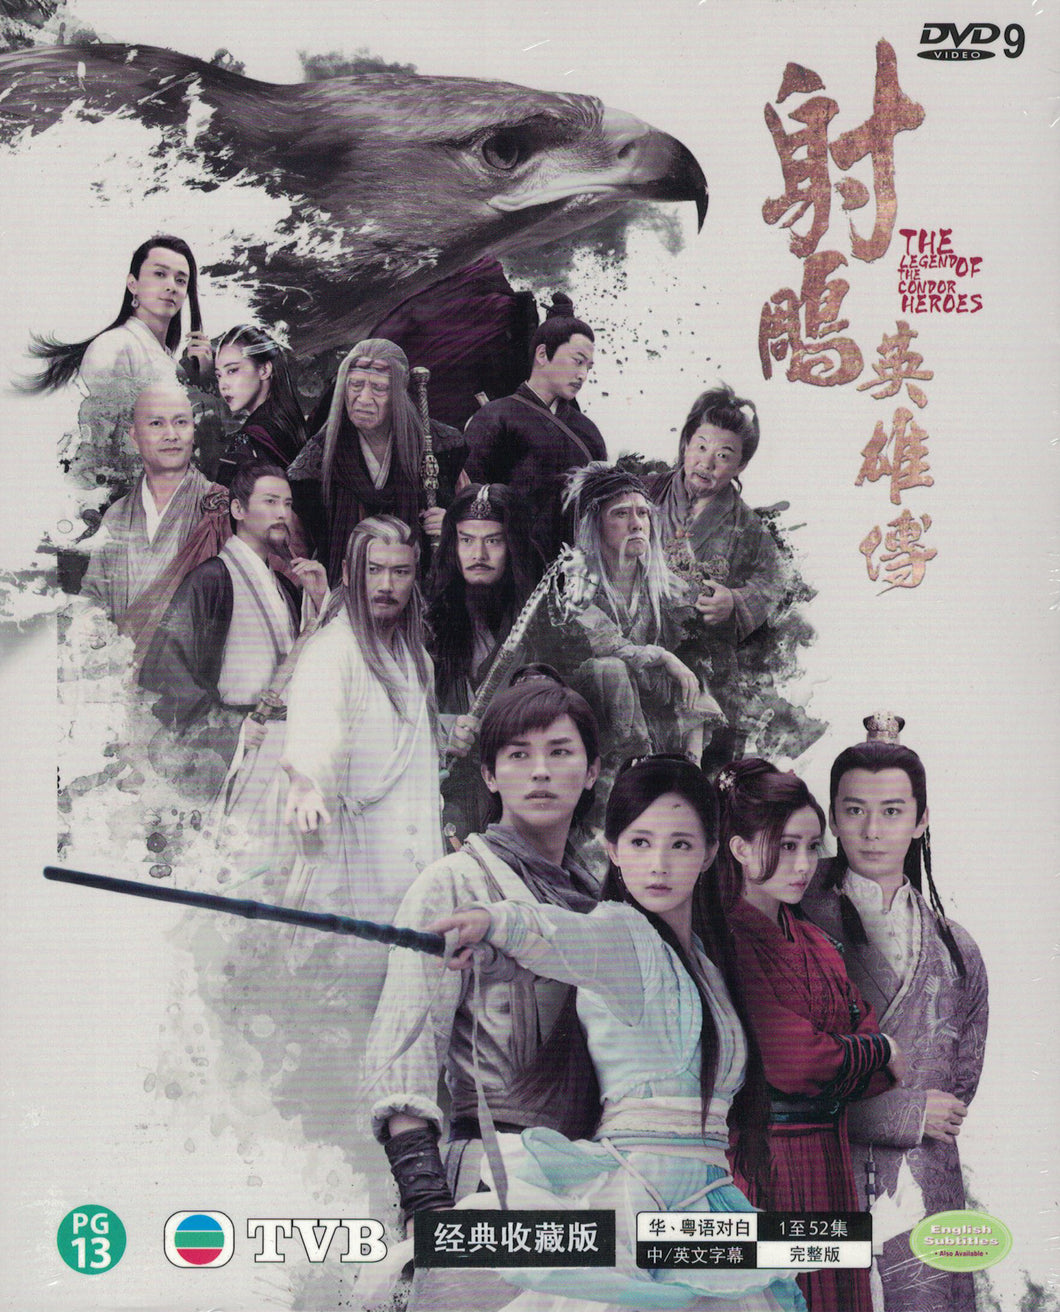 The Legend of the Condor Heroes